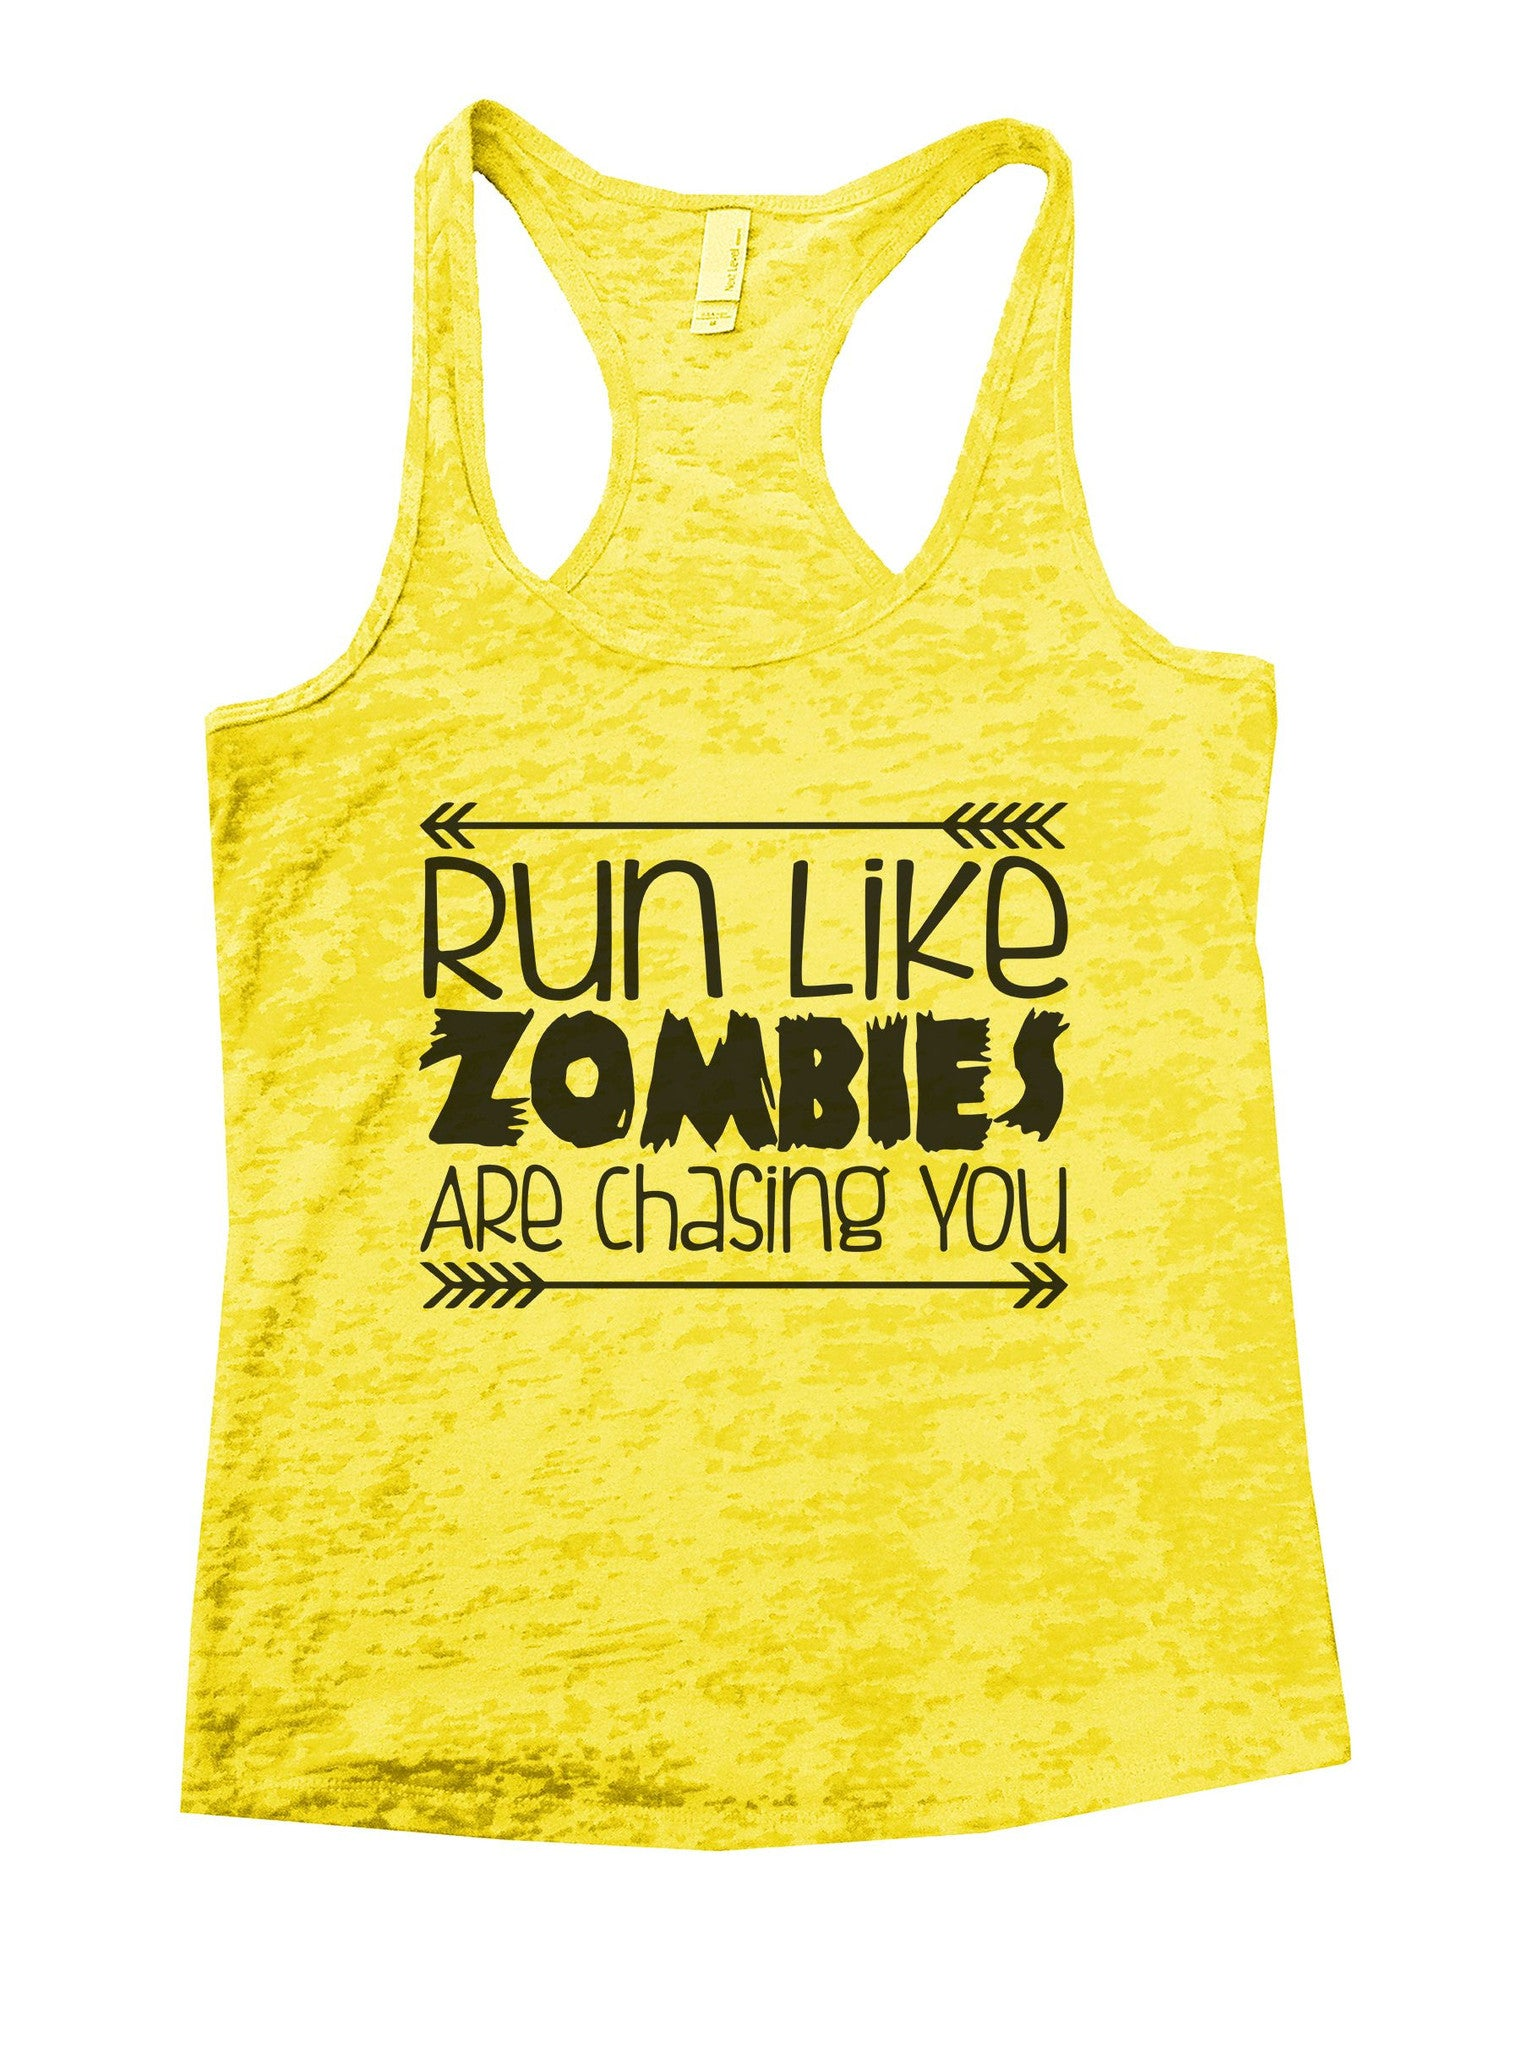 Run Like Zombies Are Chasing You Burnout Tank Top By BurnoutTankTops.com - 837 - Funny Shirts Tank Tops Burnouts and Triblends  - 7